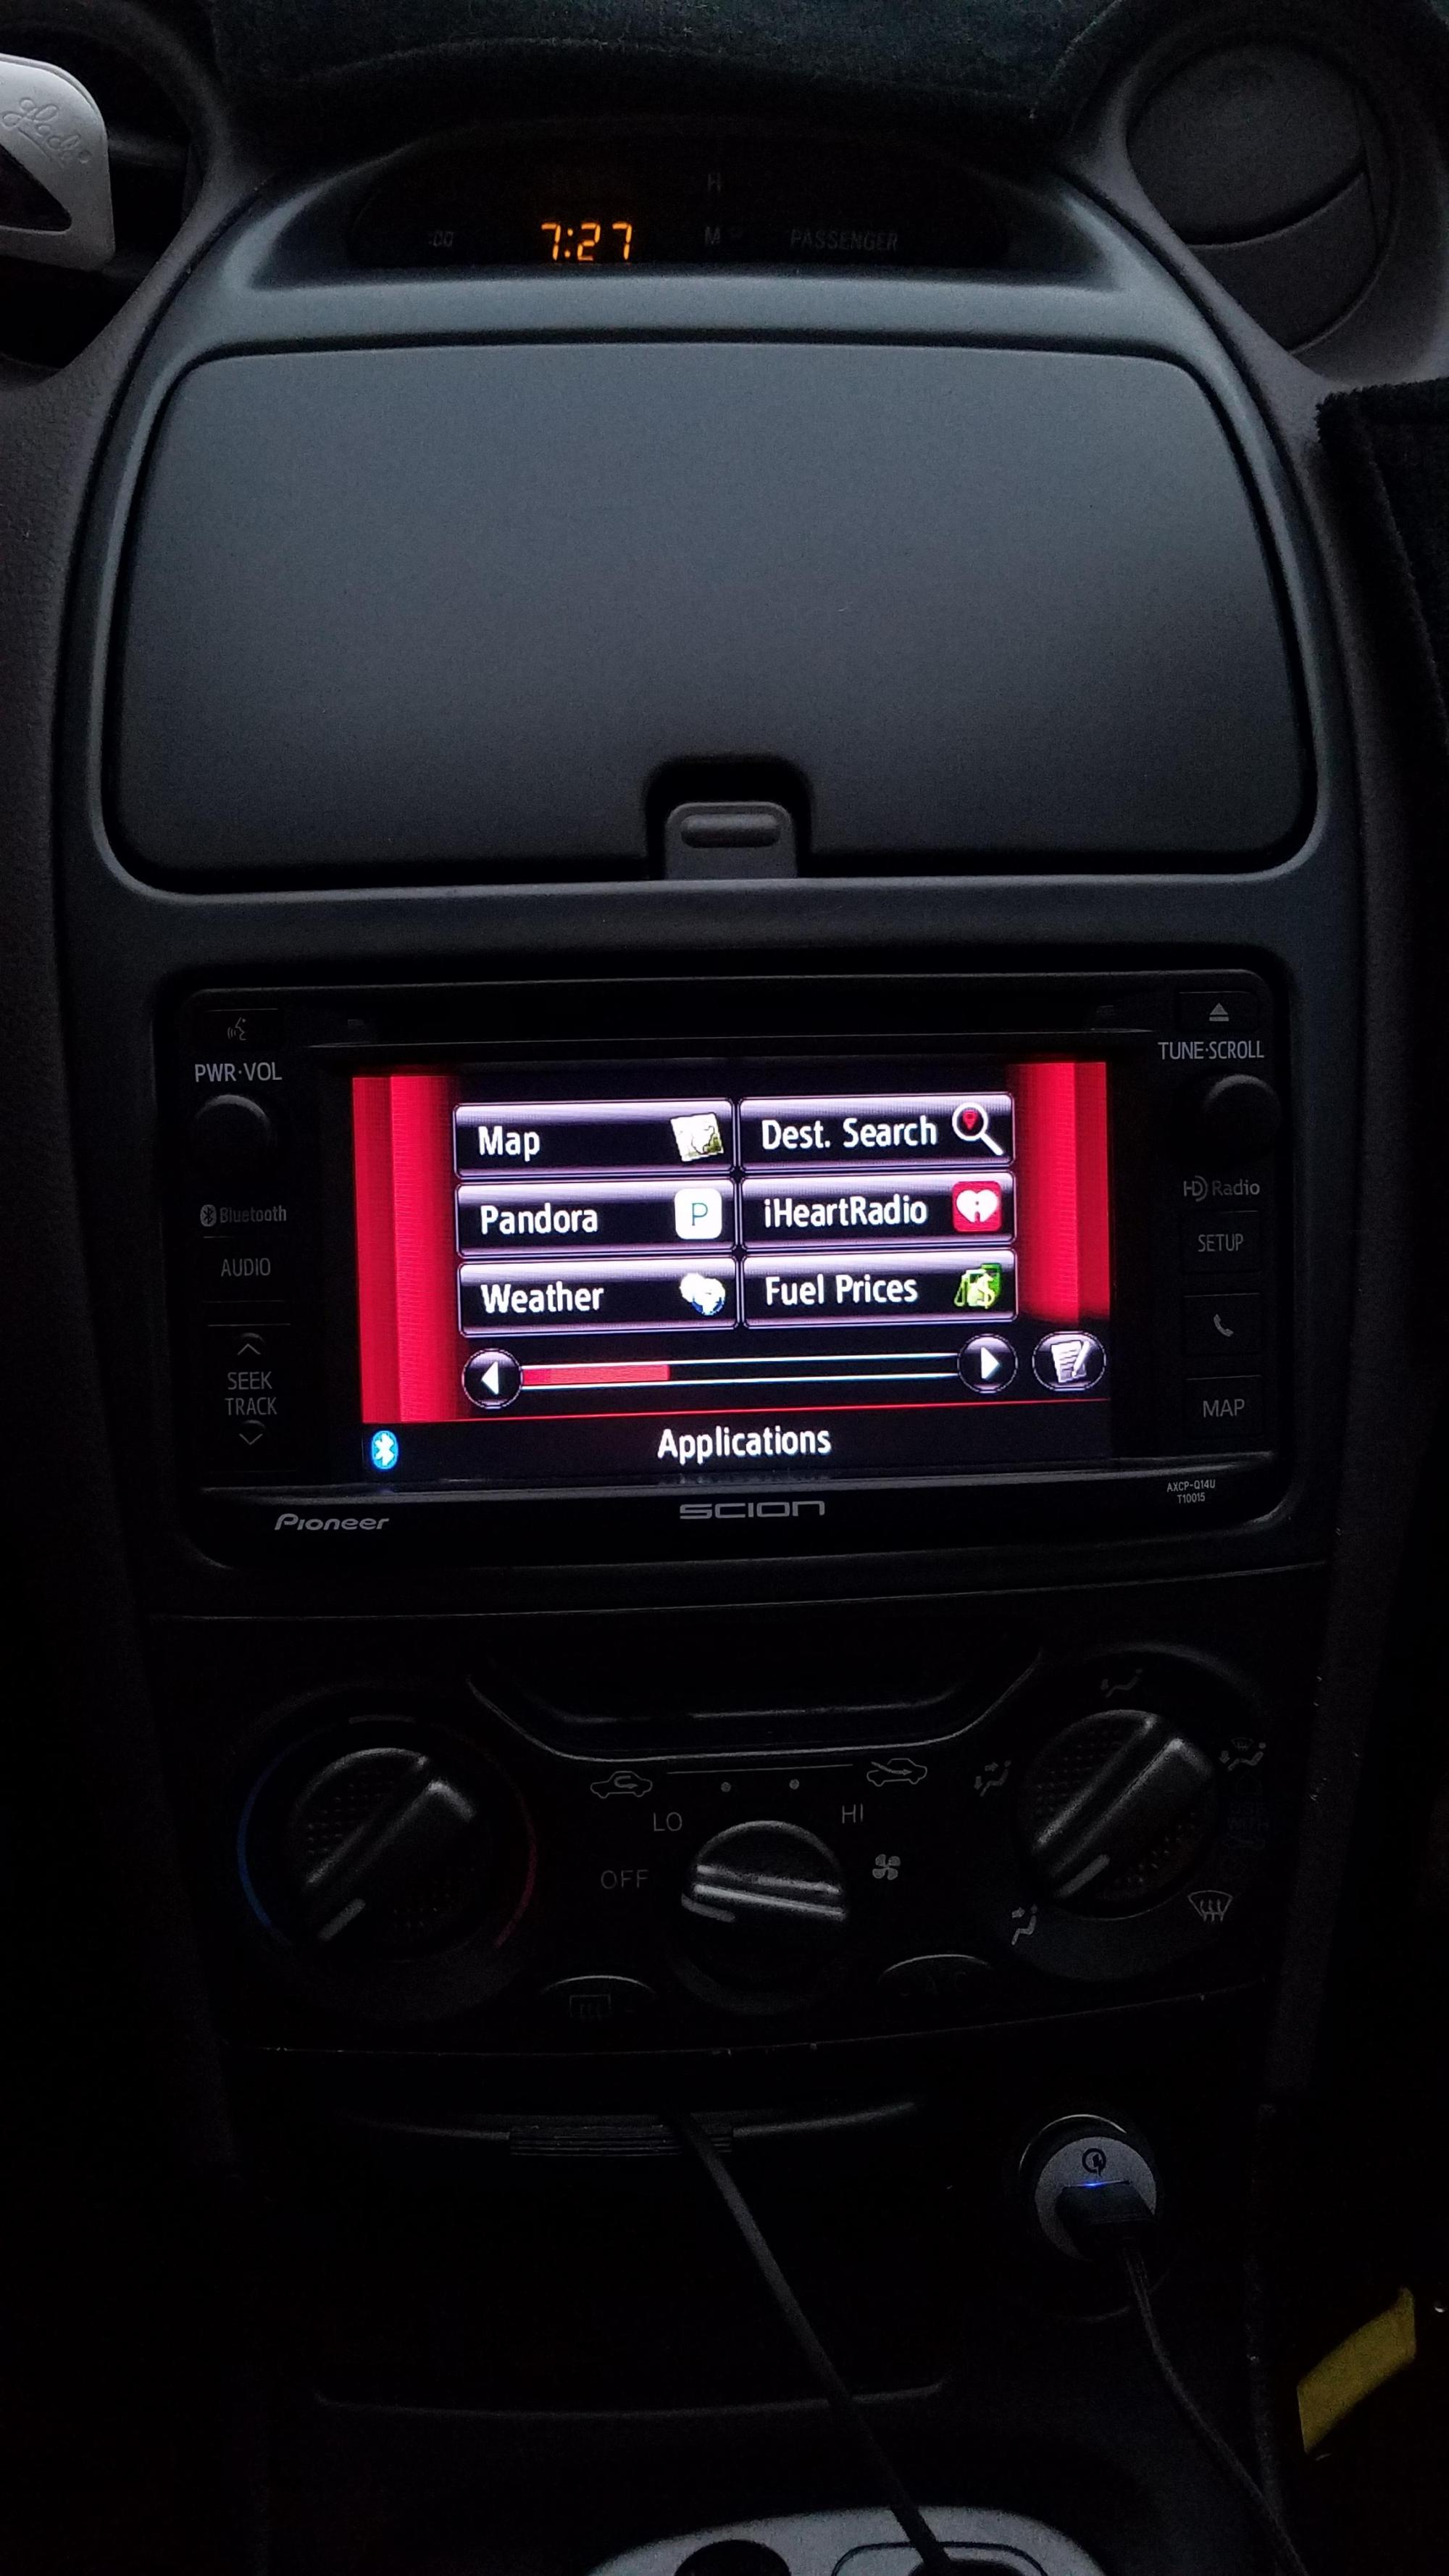 hight resolution of for anyone who wants an oem stereo upgrade